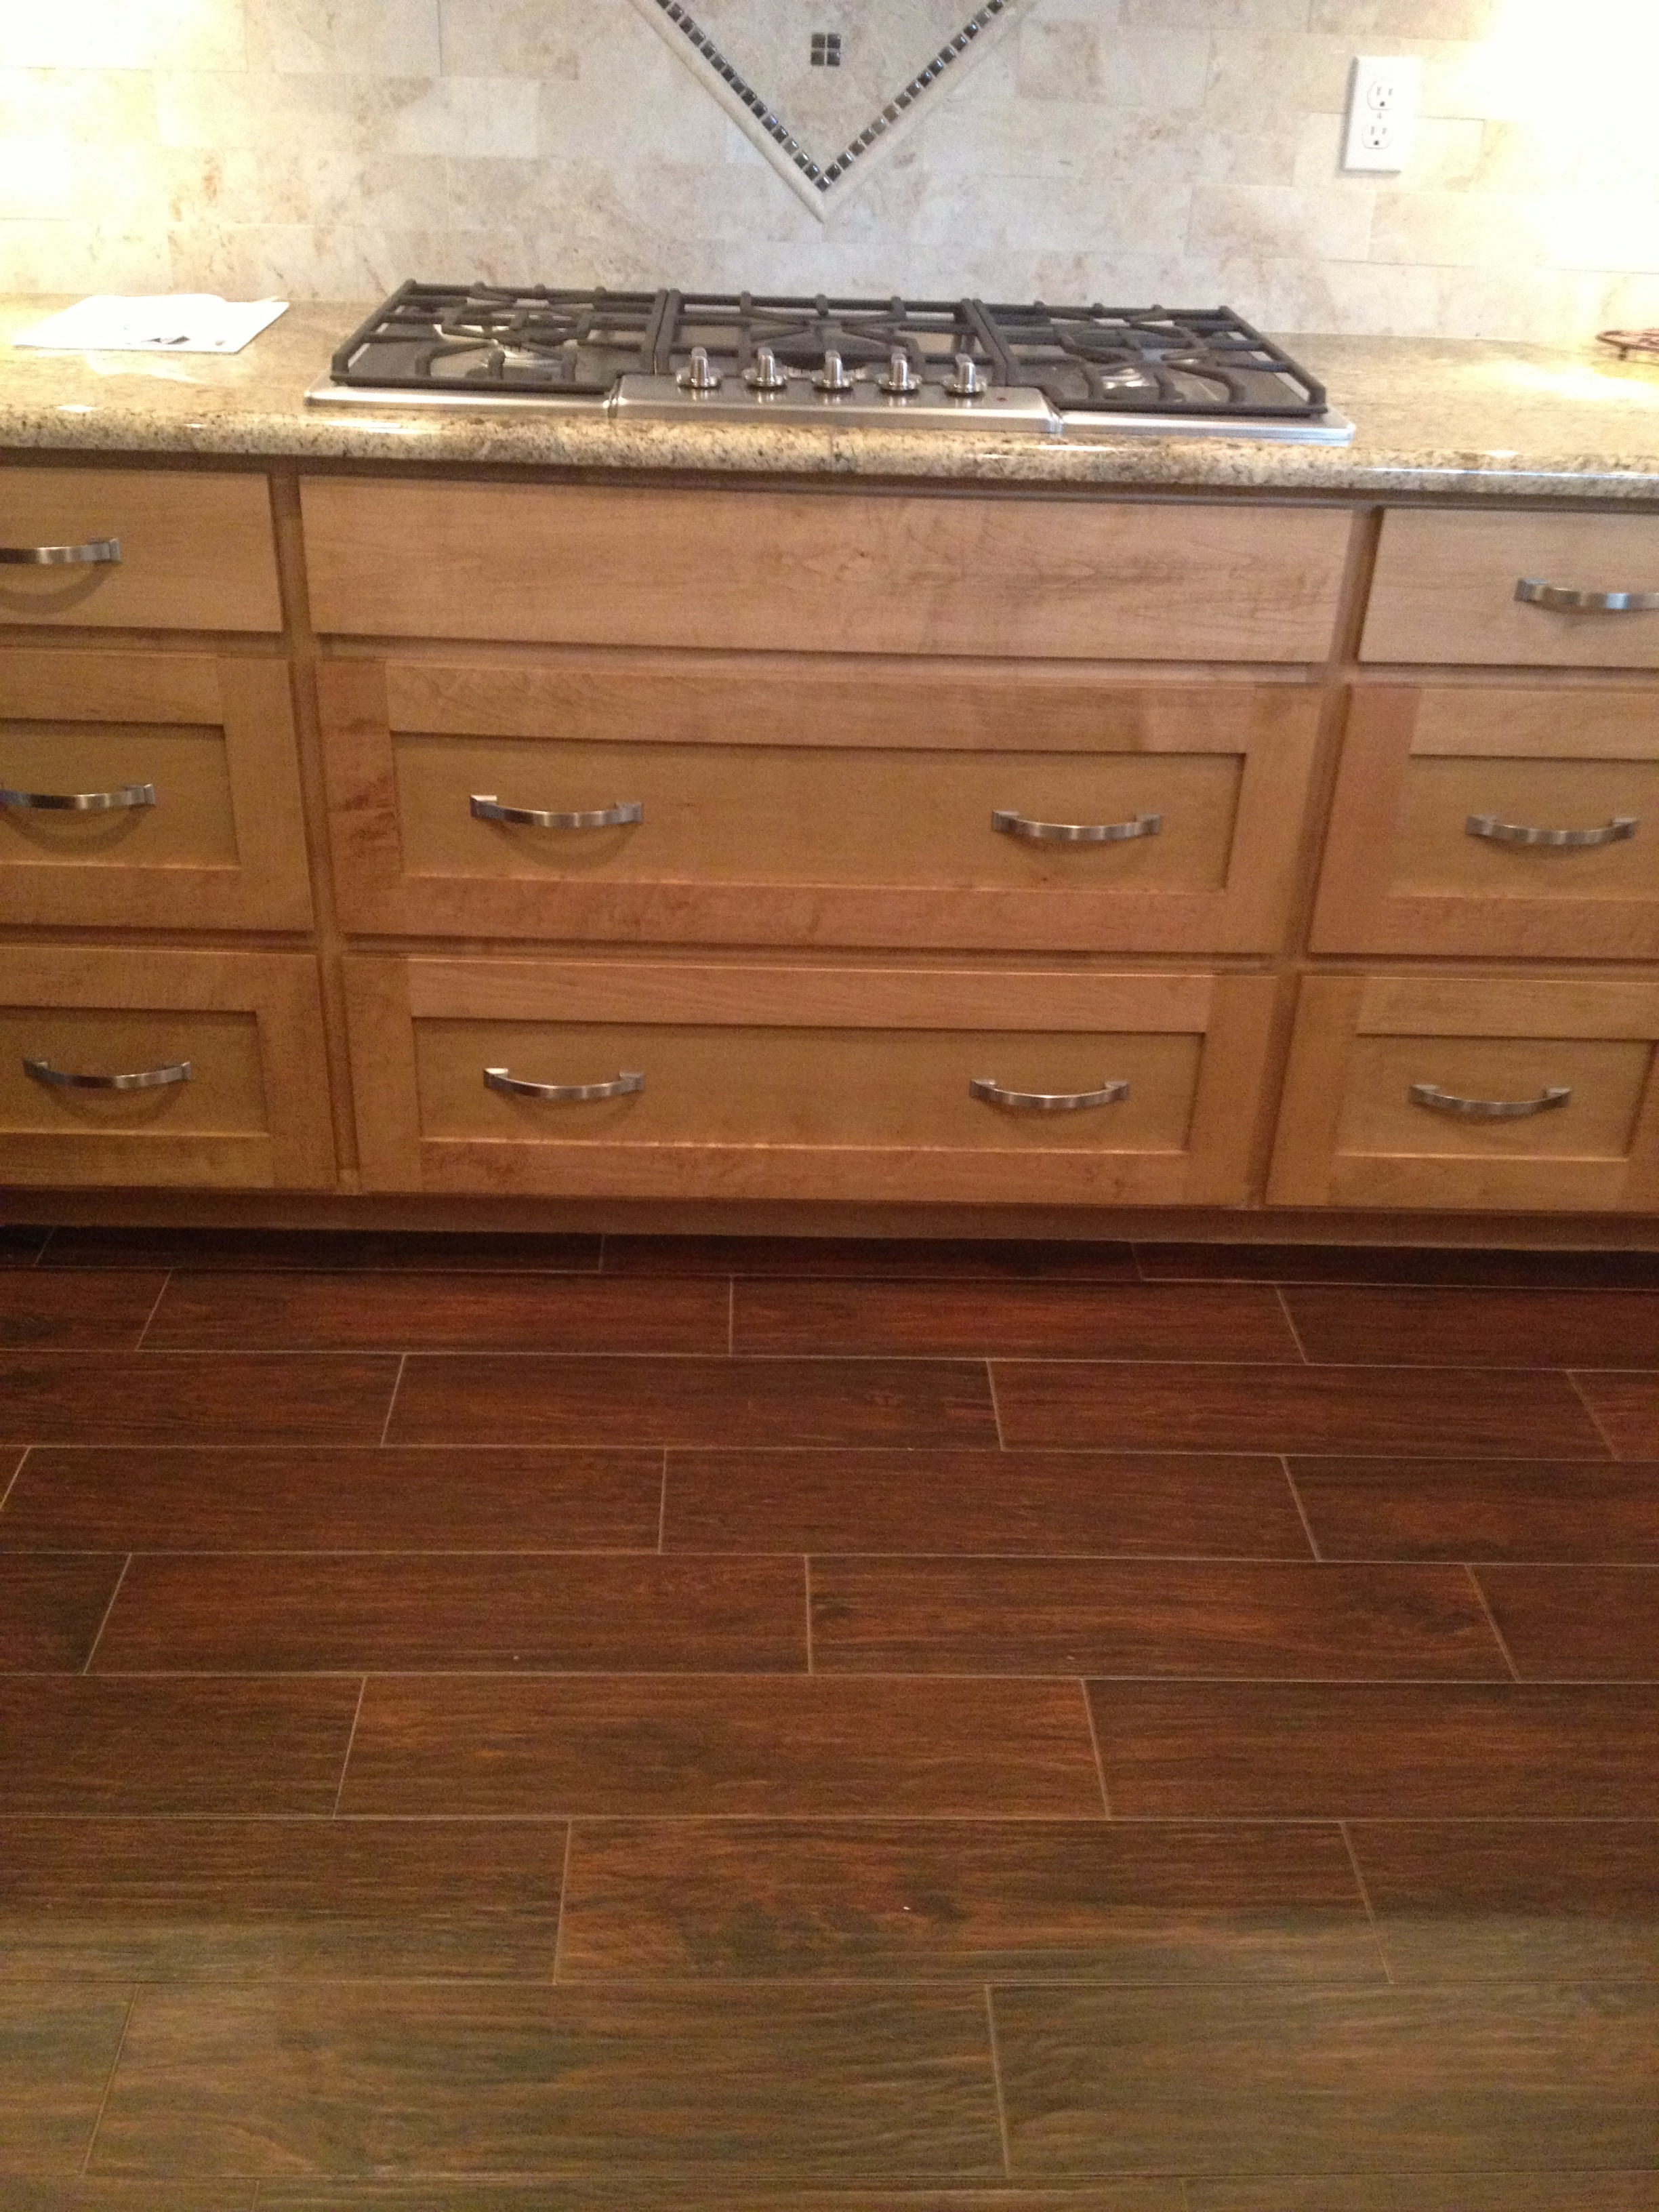 can you put hardwood floors in kitchen of floor and decor houston living room floor plan open floor plan for floor and decor houston kitchen decor wood tile floors white cabinets and flooring black